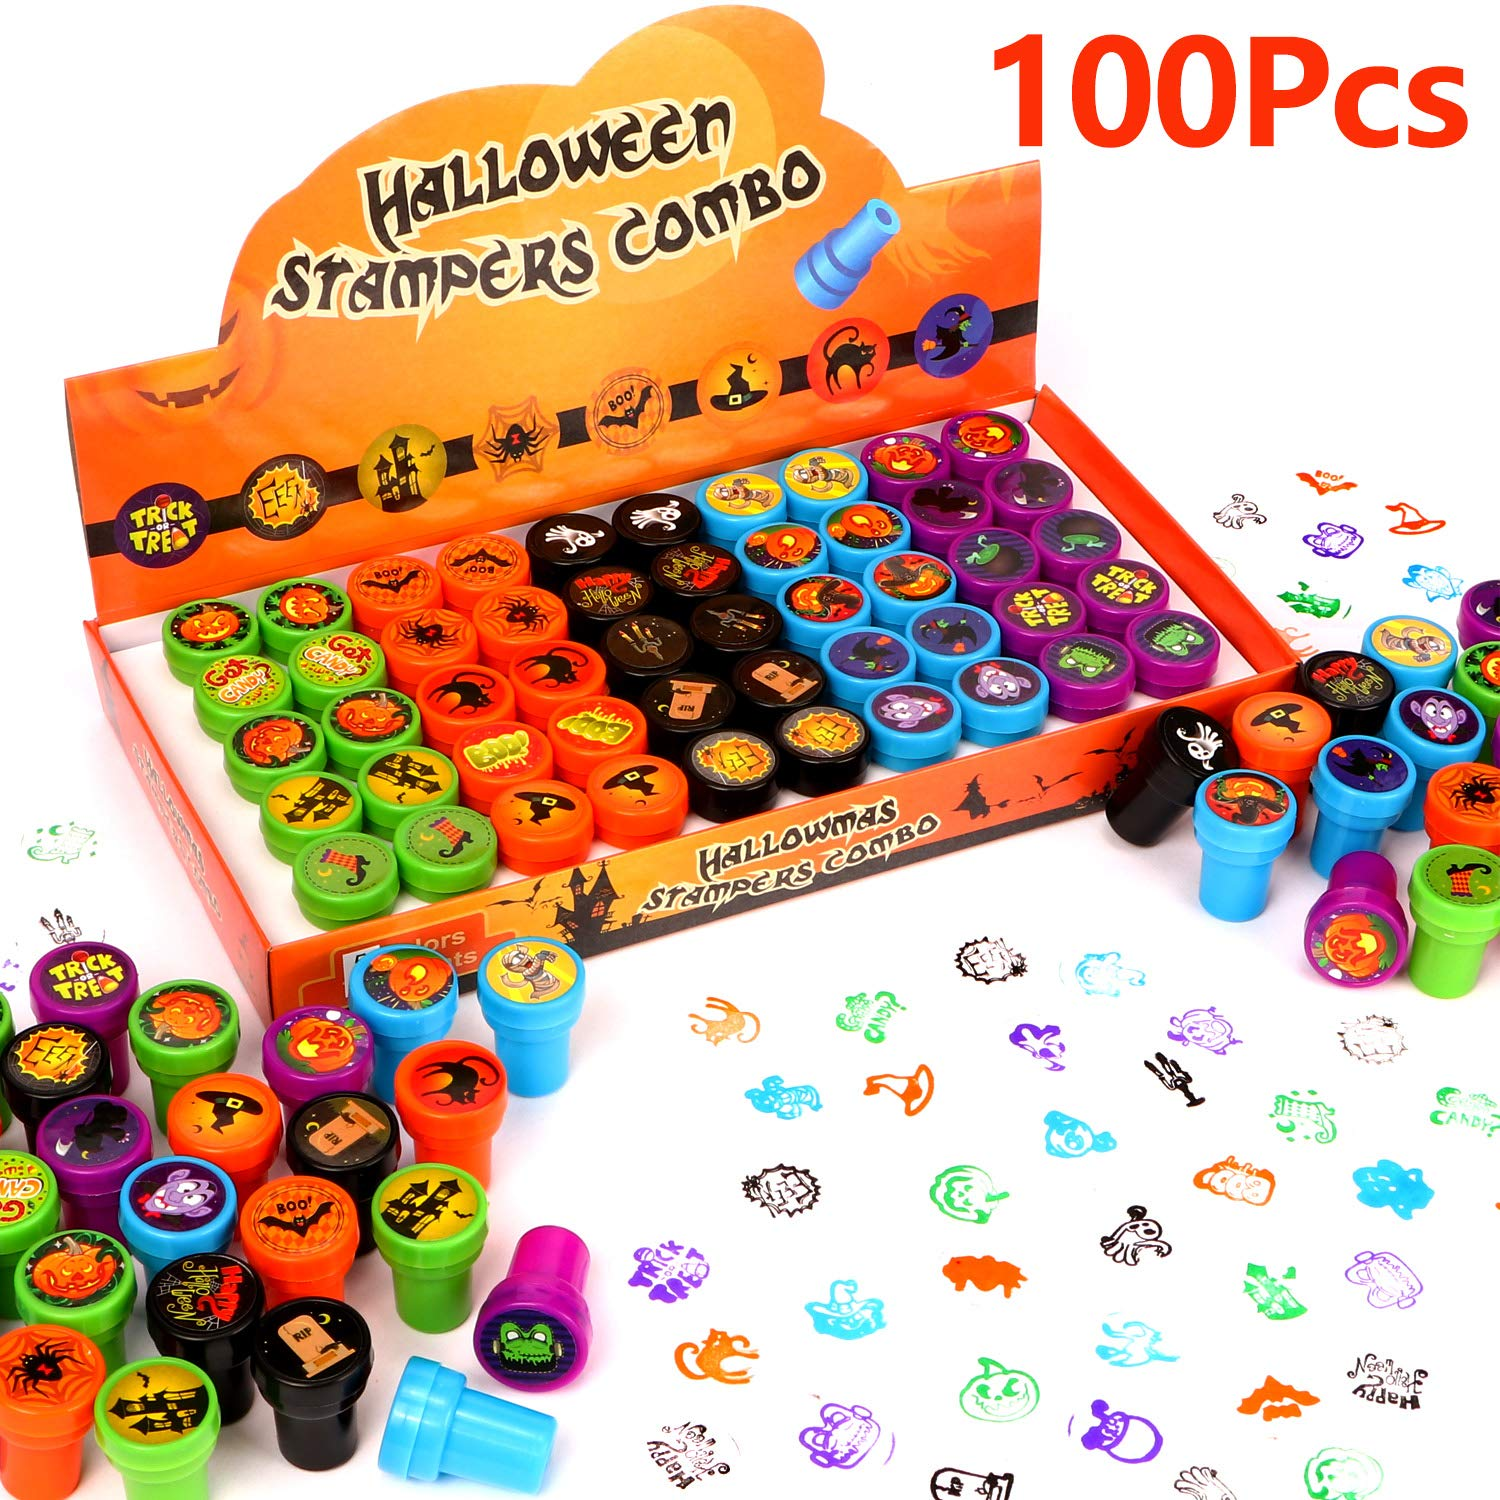 100 Pcs Halloween Assorted Stamps Kids Self-Ink Stamps for Kids Party Favors for Halloween Party Favors, Game Prizes, Halloween Goodies Bags